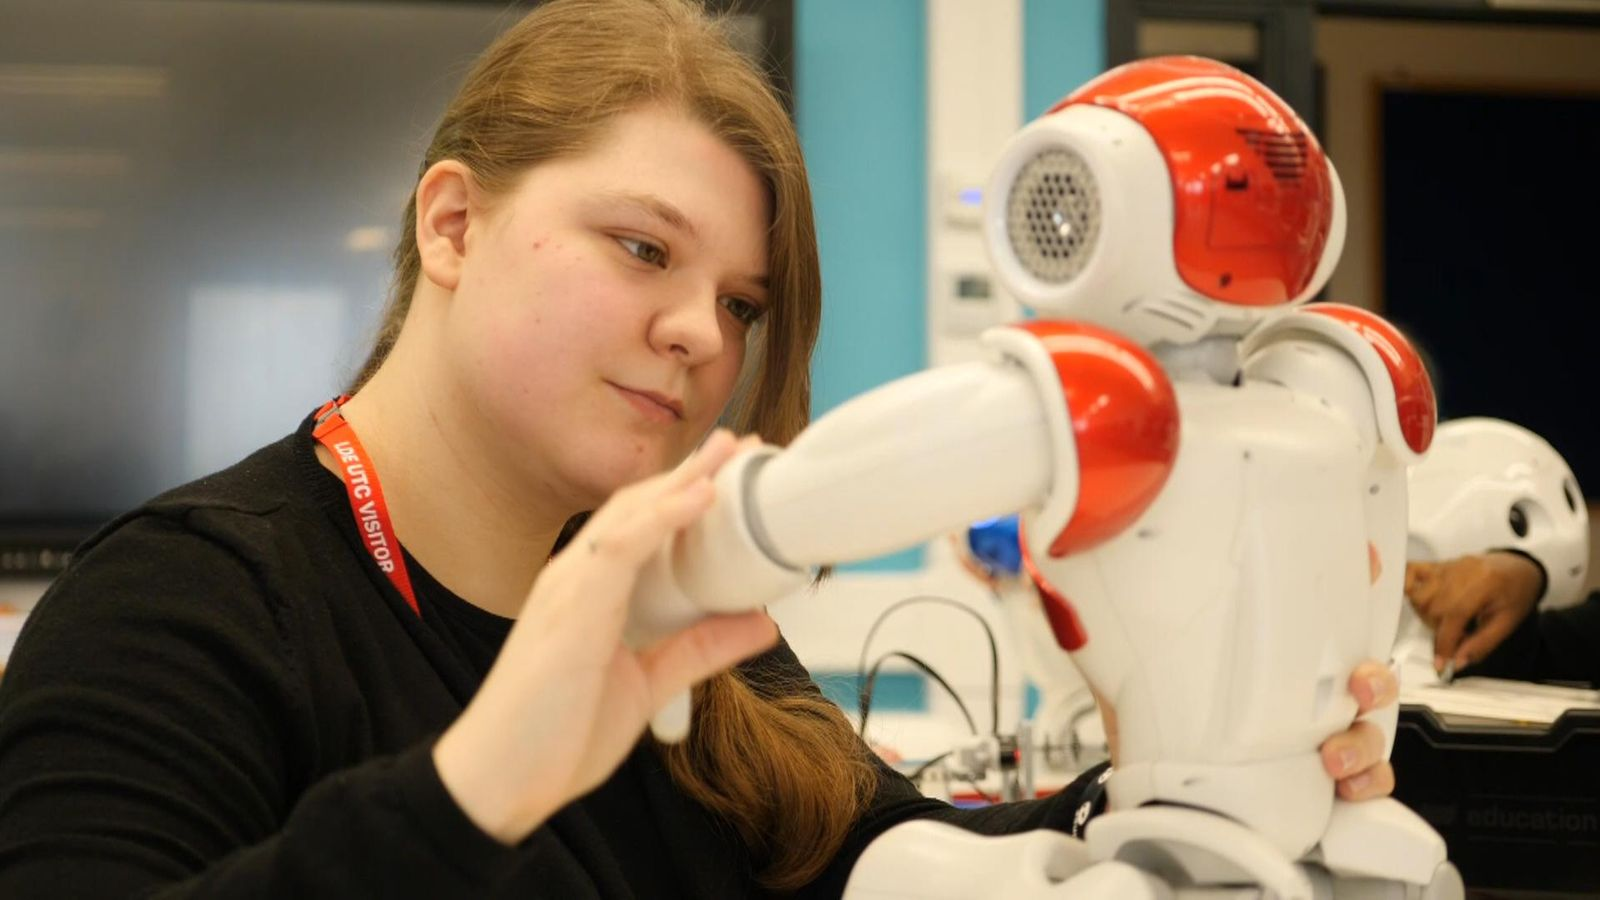 Female experts fighting the pandemic hope to inspire new generation of young women STEM